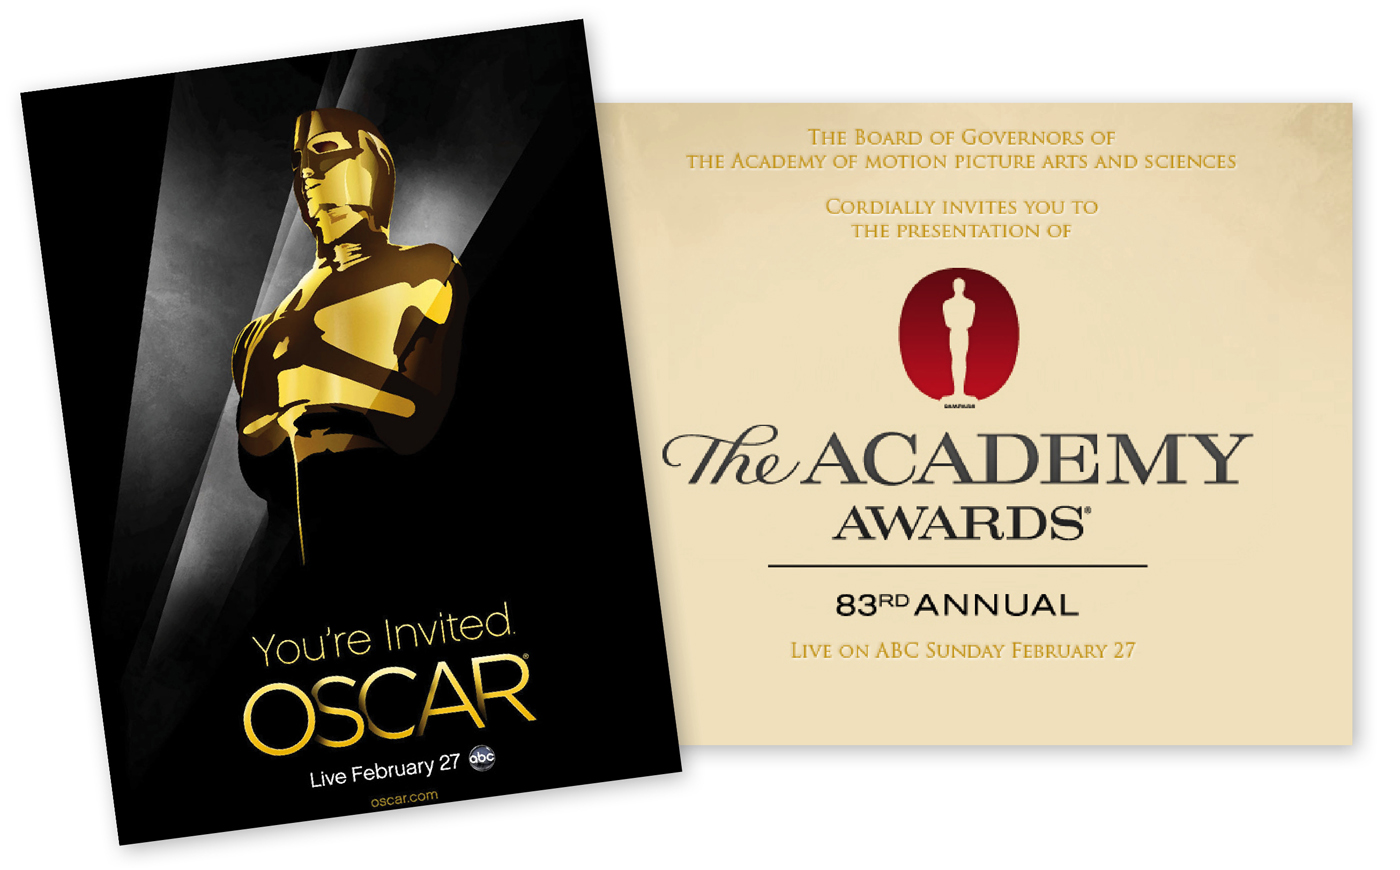 ... the reason for which red carpet was invented; the 83rd Academy Awards